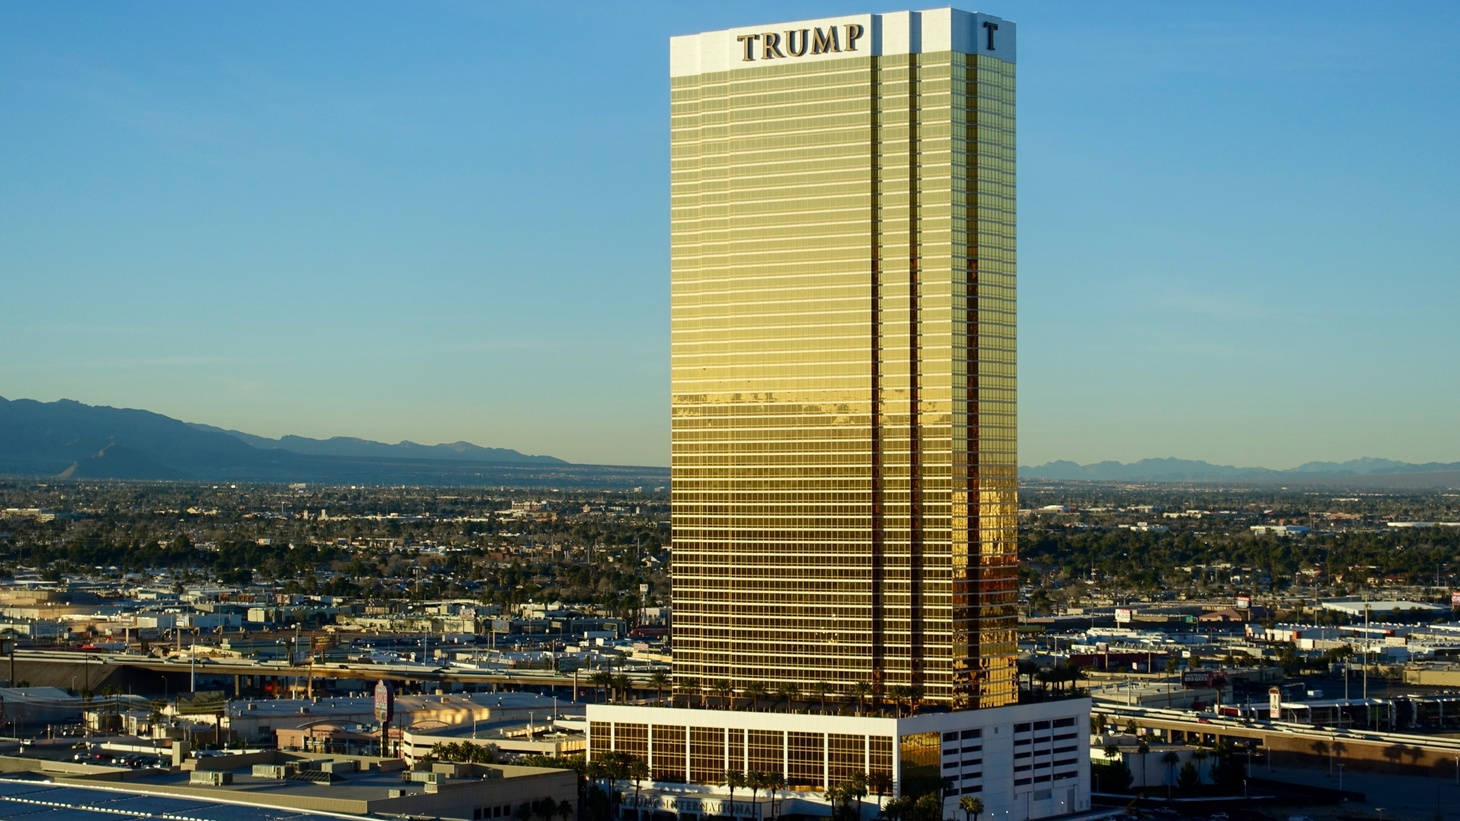 The Trump International Hotel & Tower owned by President-elect Donald Trump is seen in Las Vegas